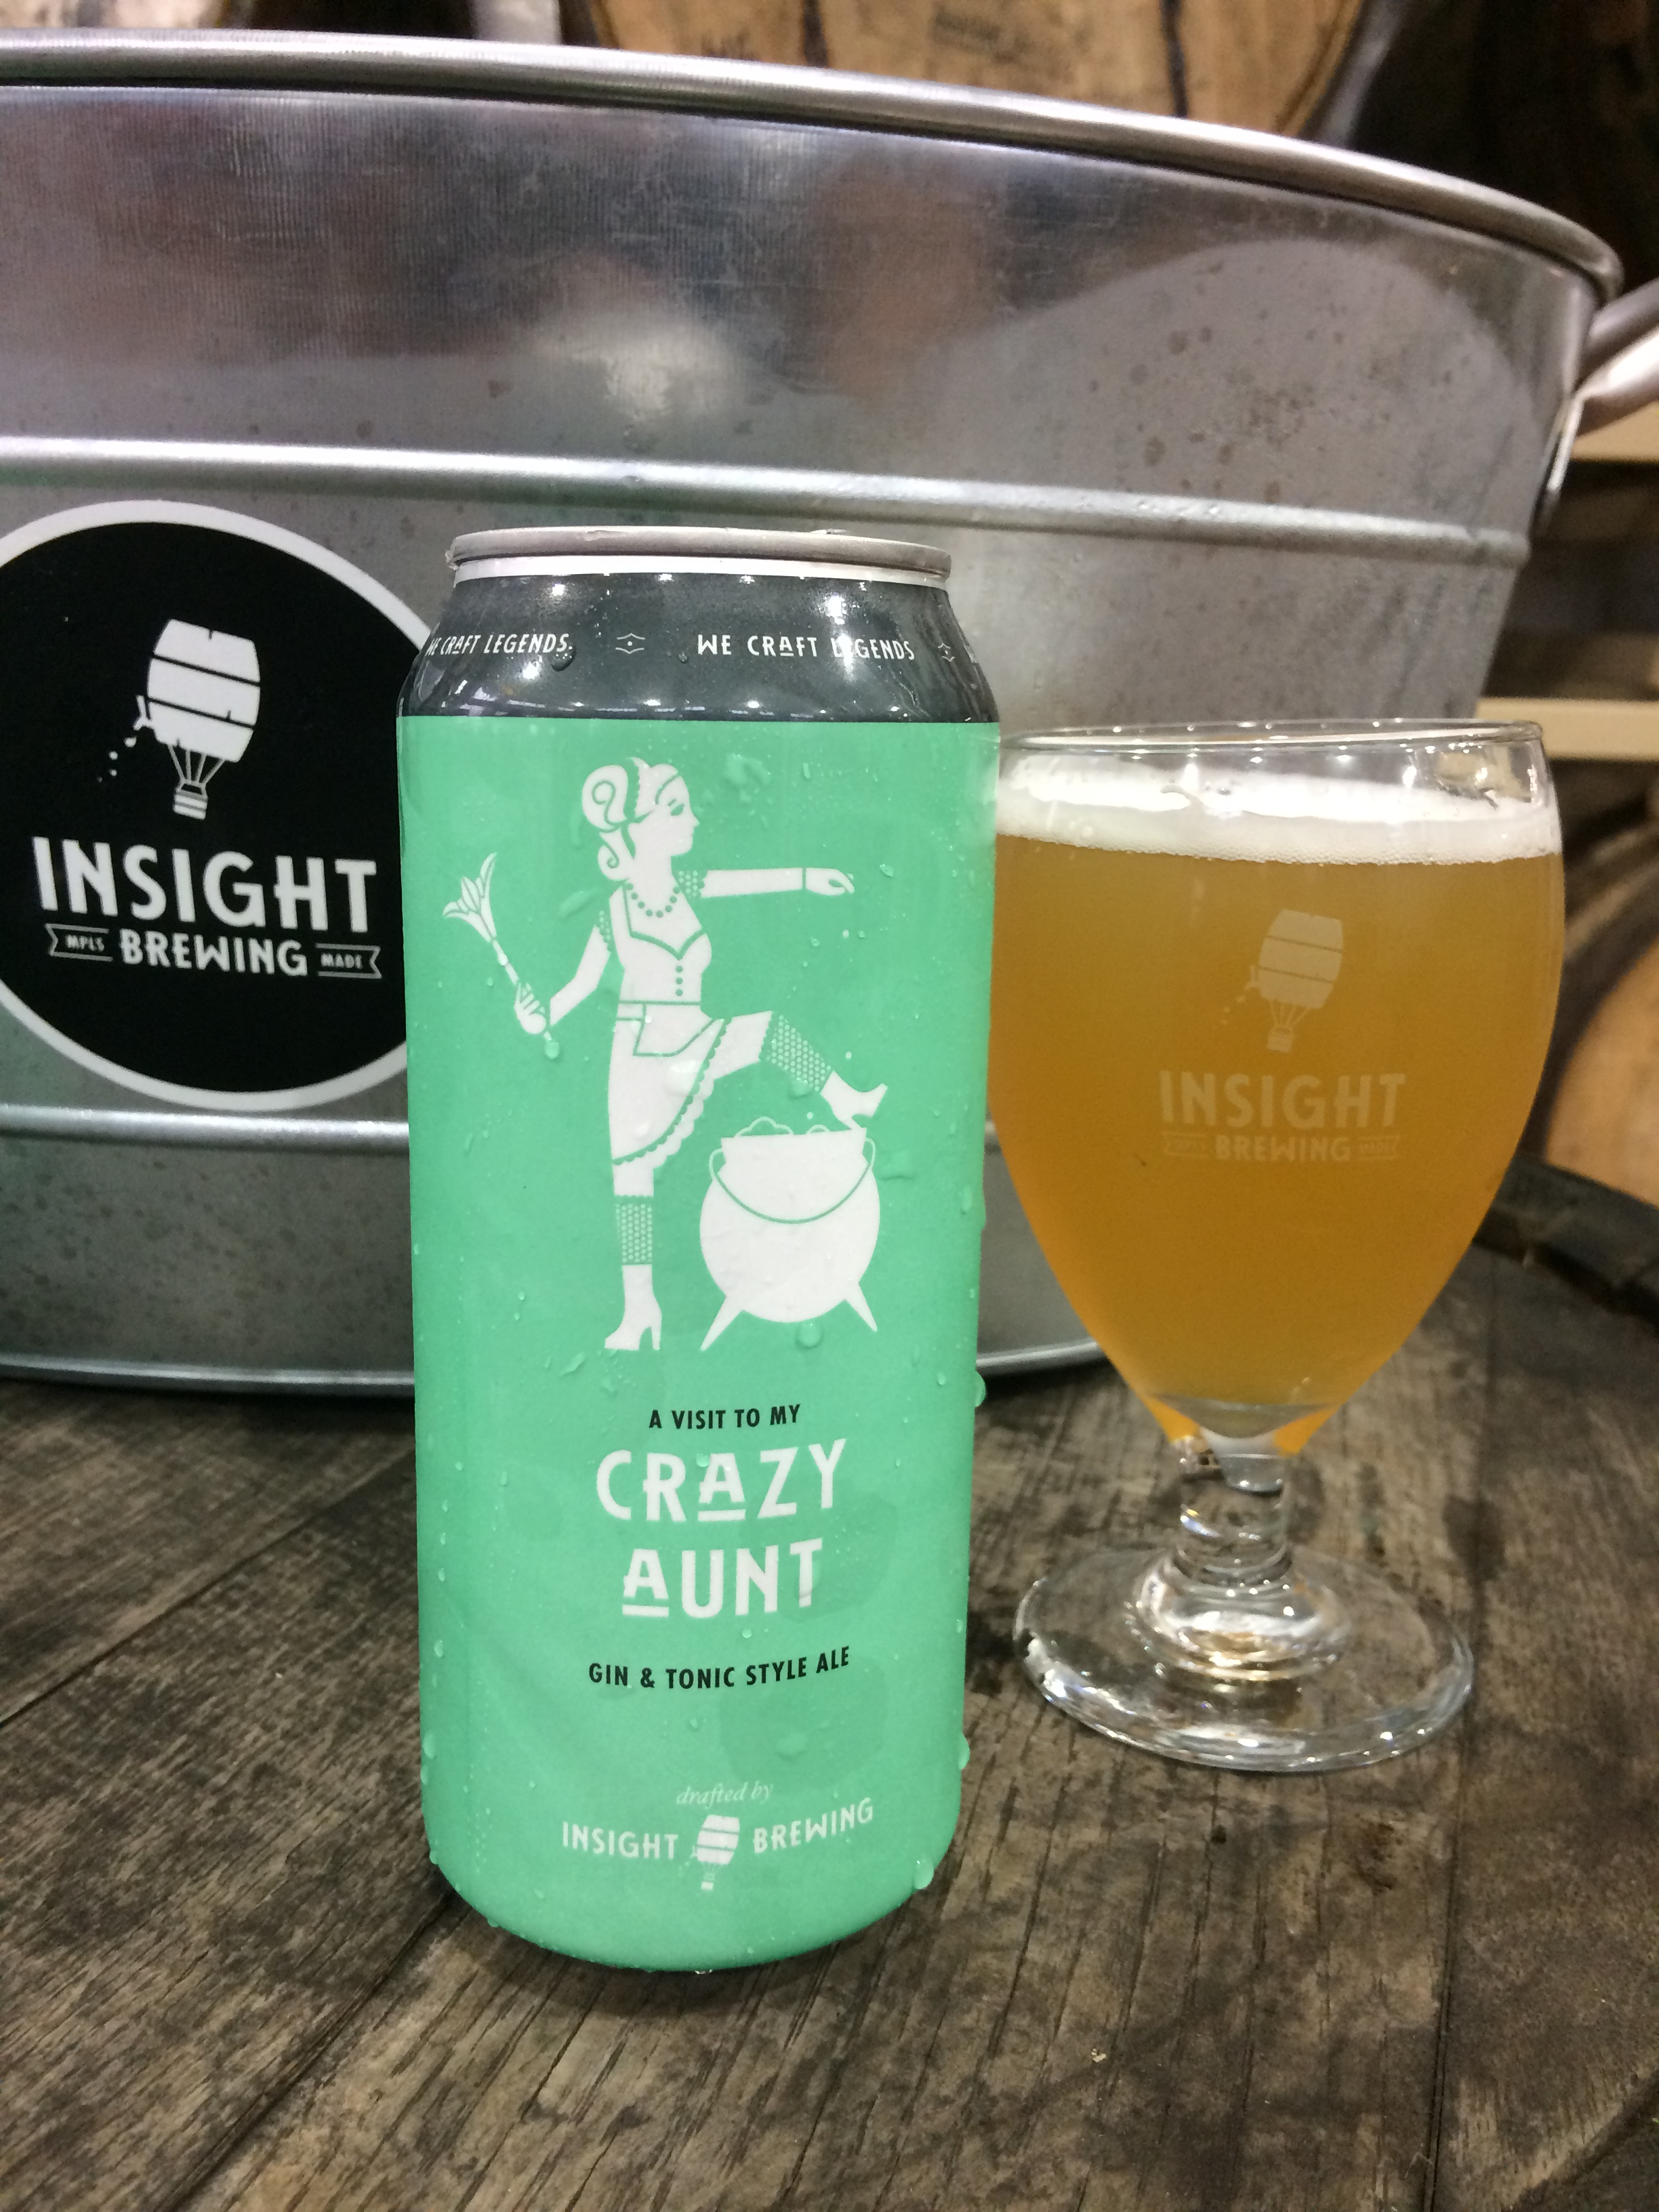 Crazy Aunt - Gin and Tonic Beer - Insight Brewing